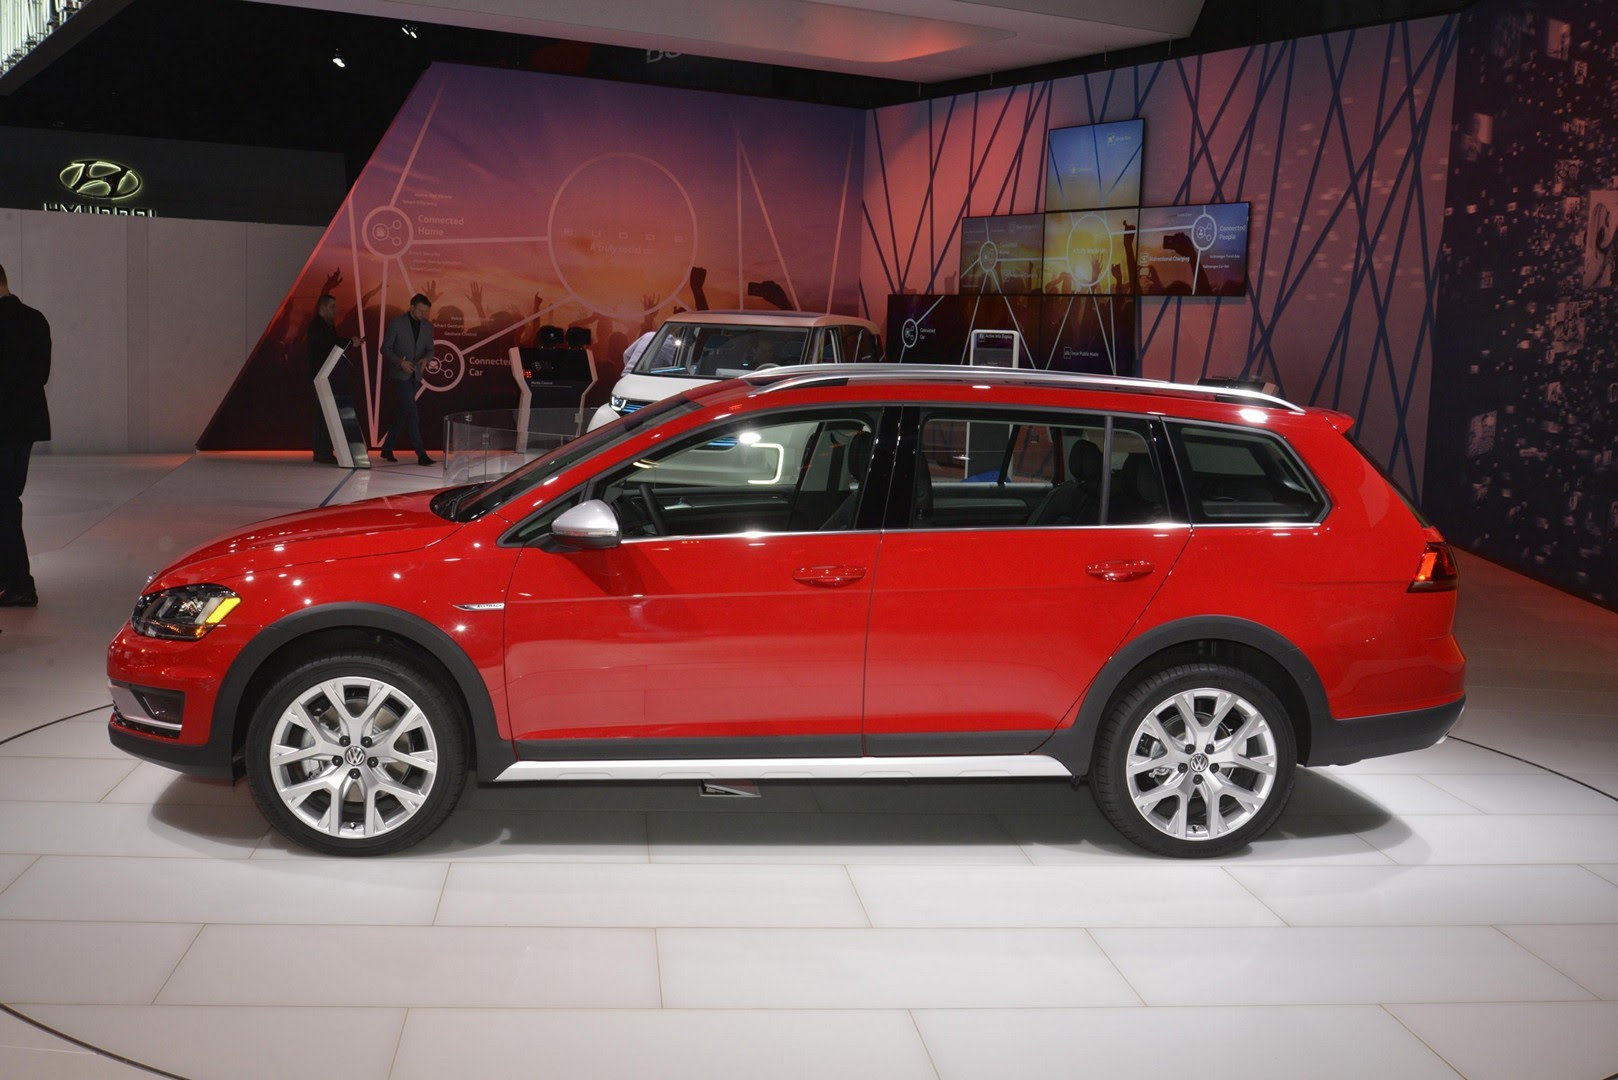 2017 Vw Golf Alltrack Has Dual Exhaust And Red Paint Like A Gti In New York Autoevolution